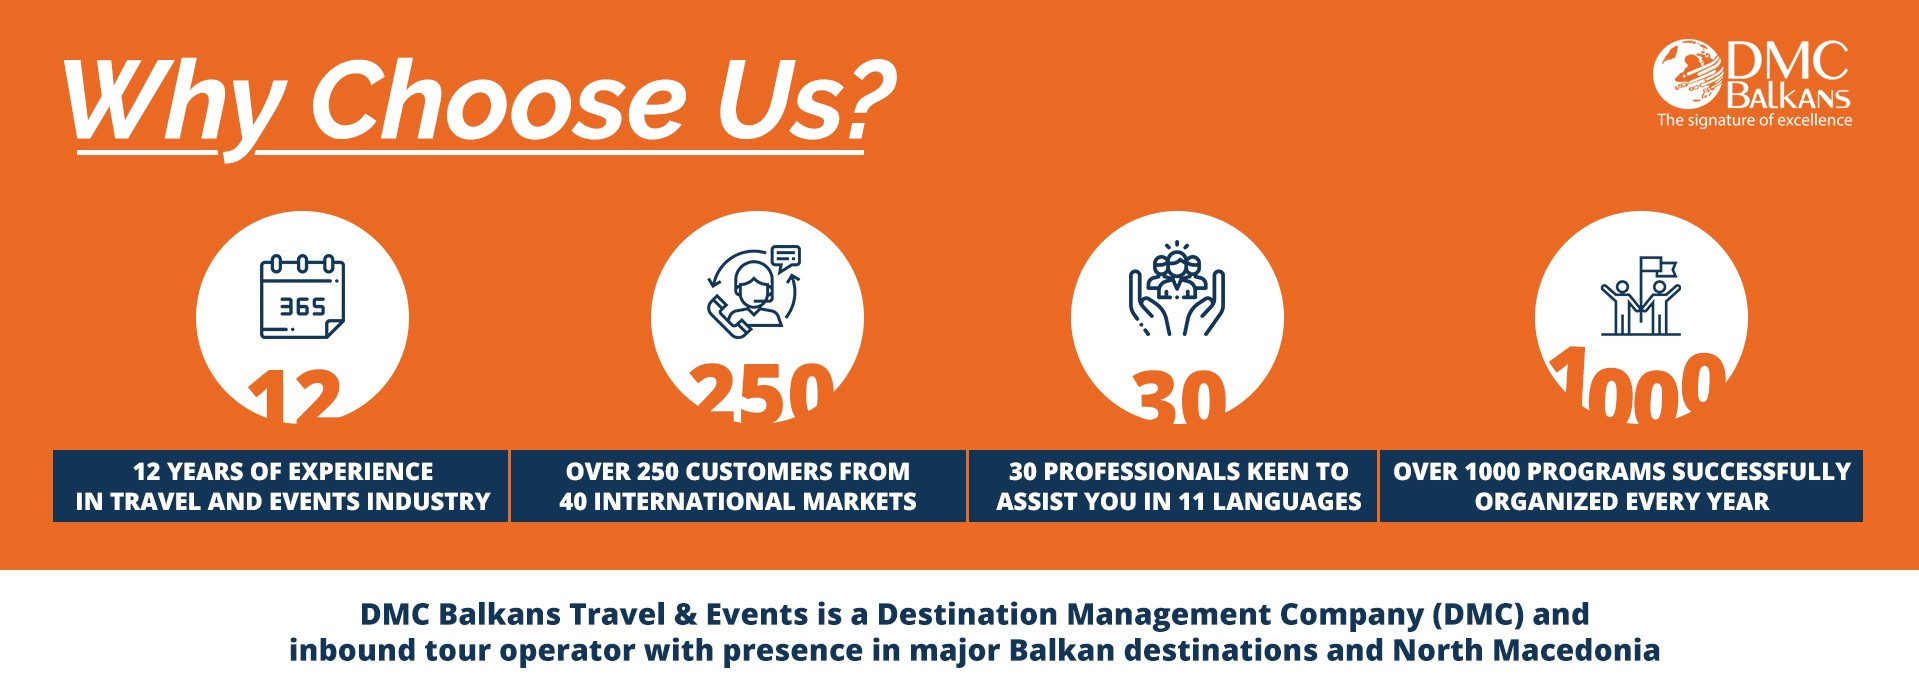 DMC Balkans Travel & Events